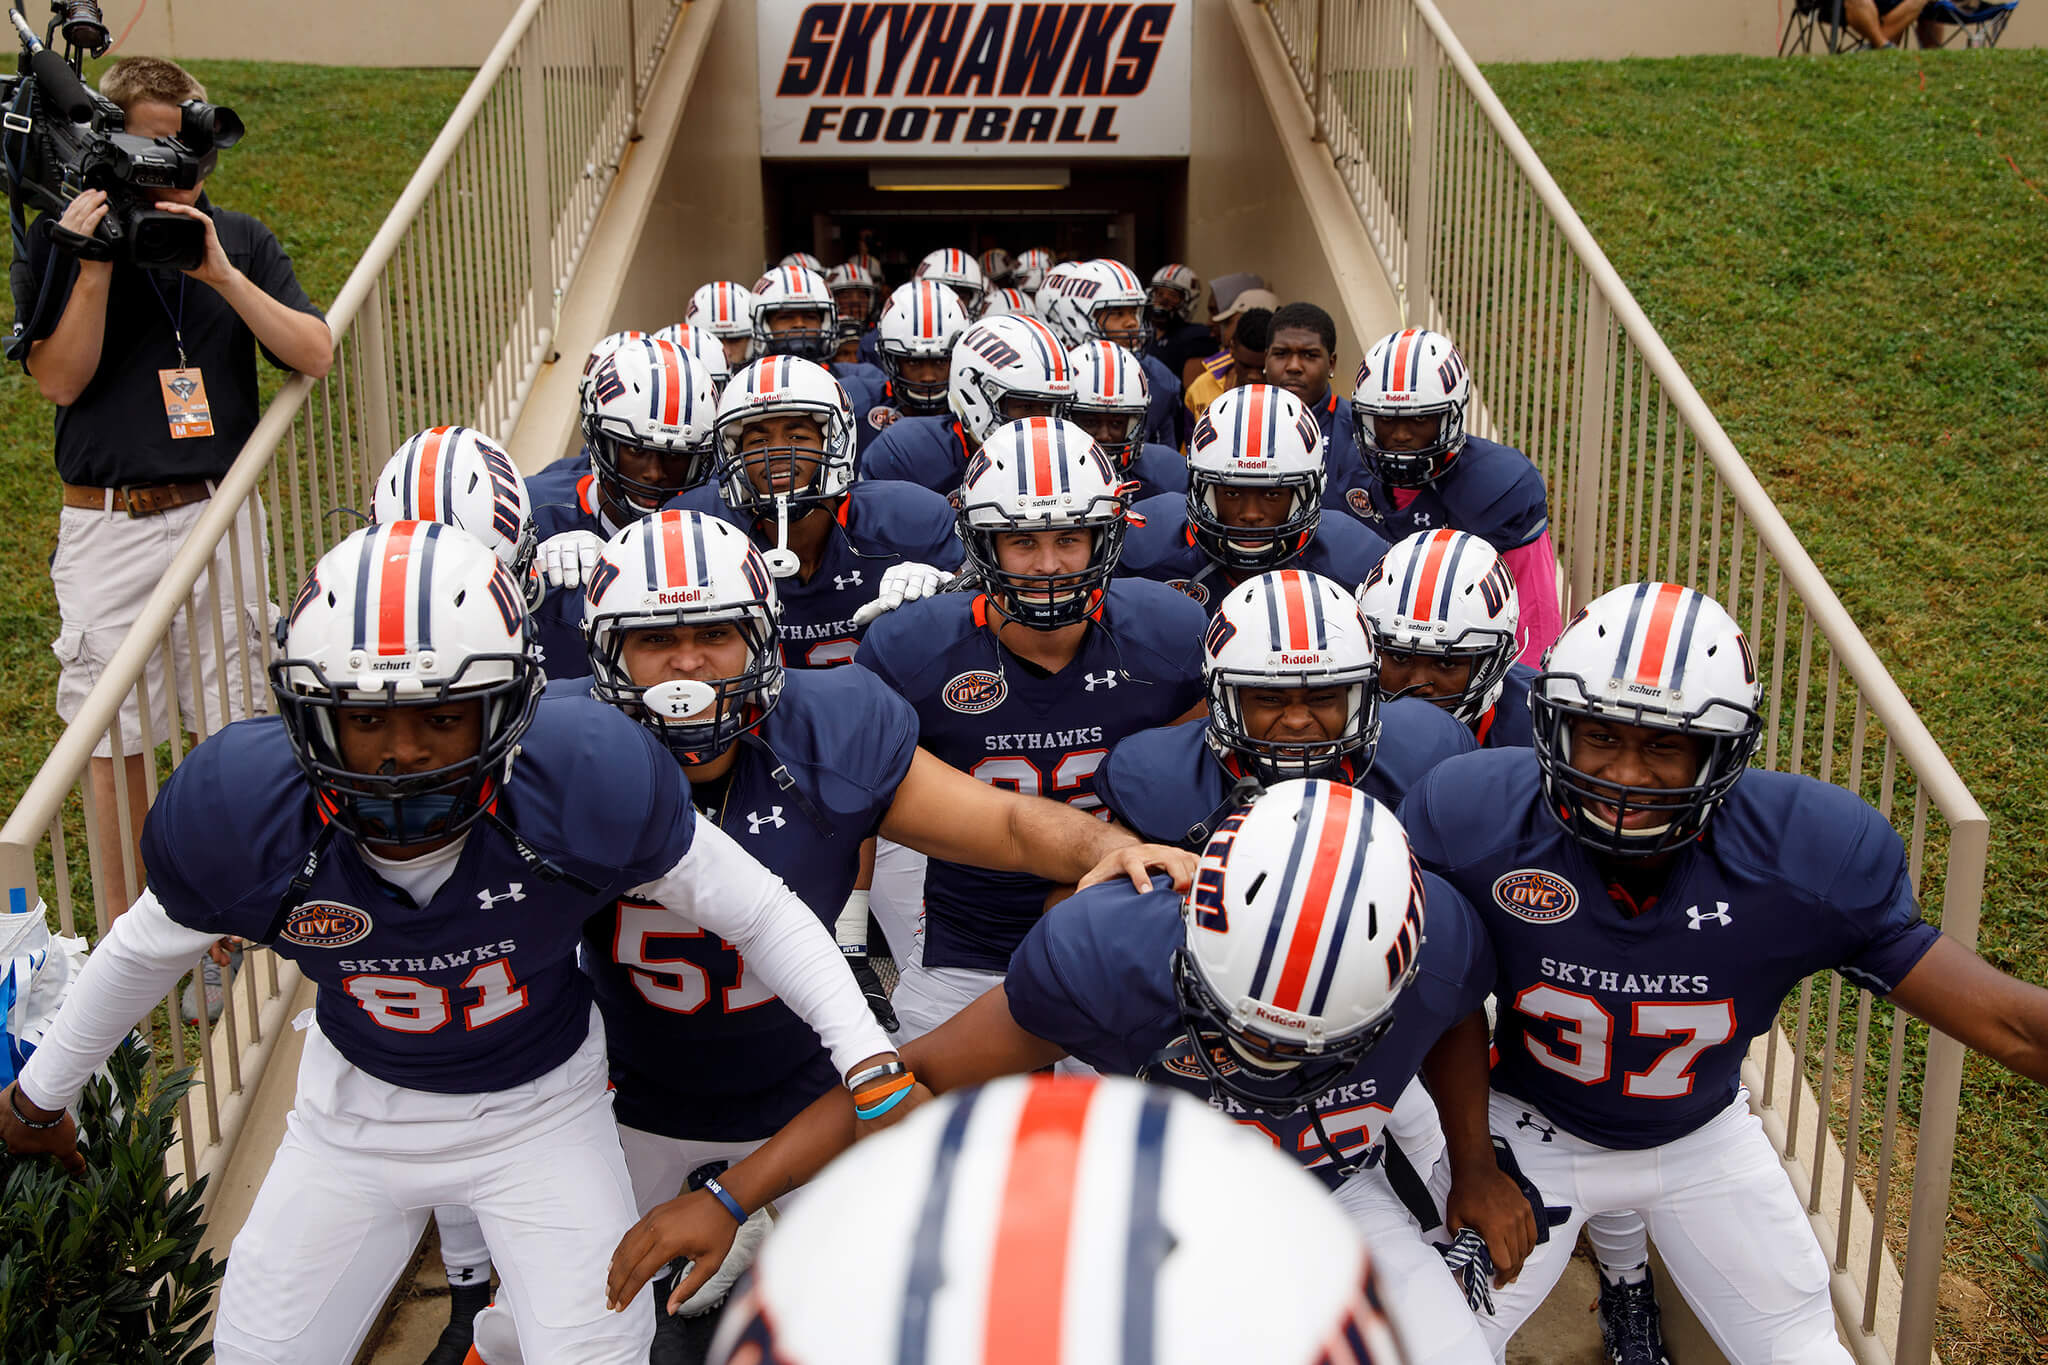 Skyhawk football team